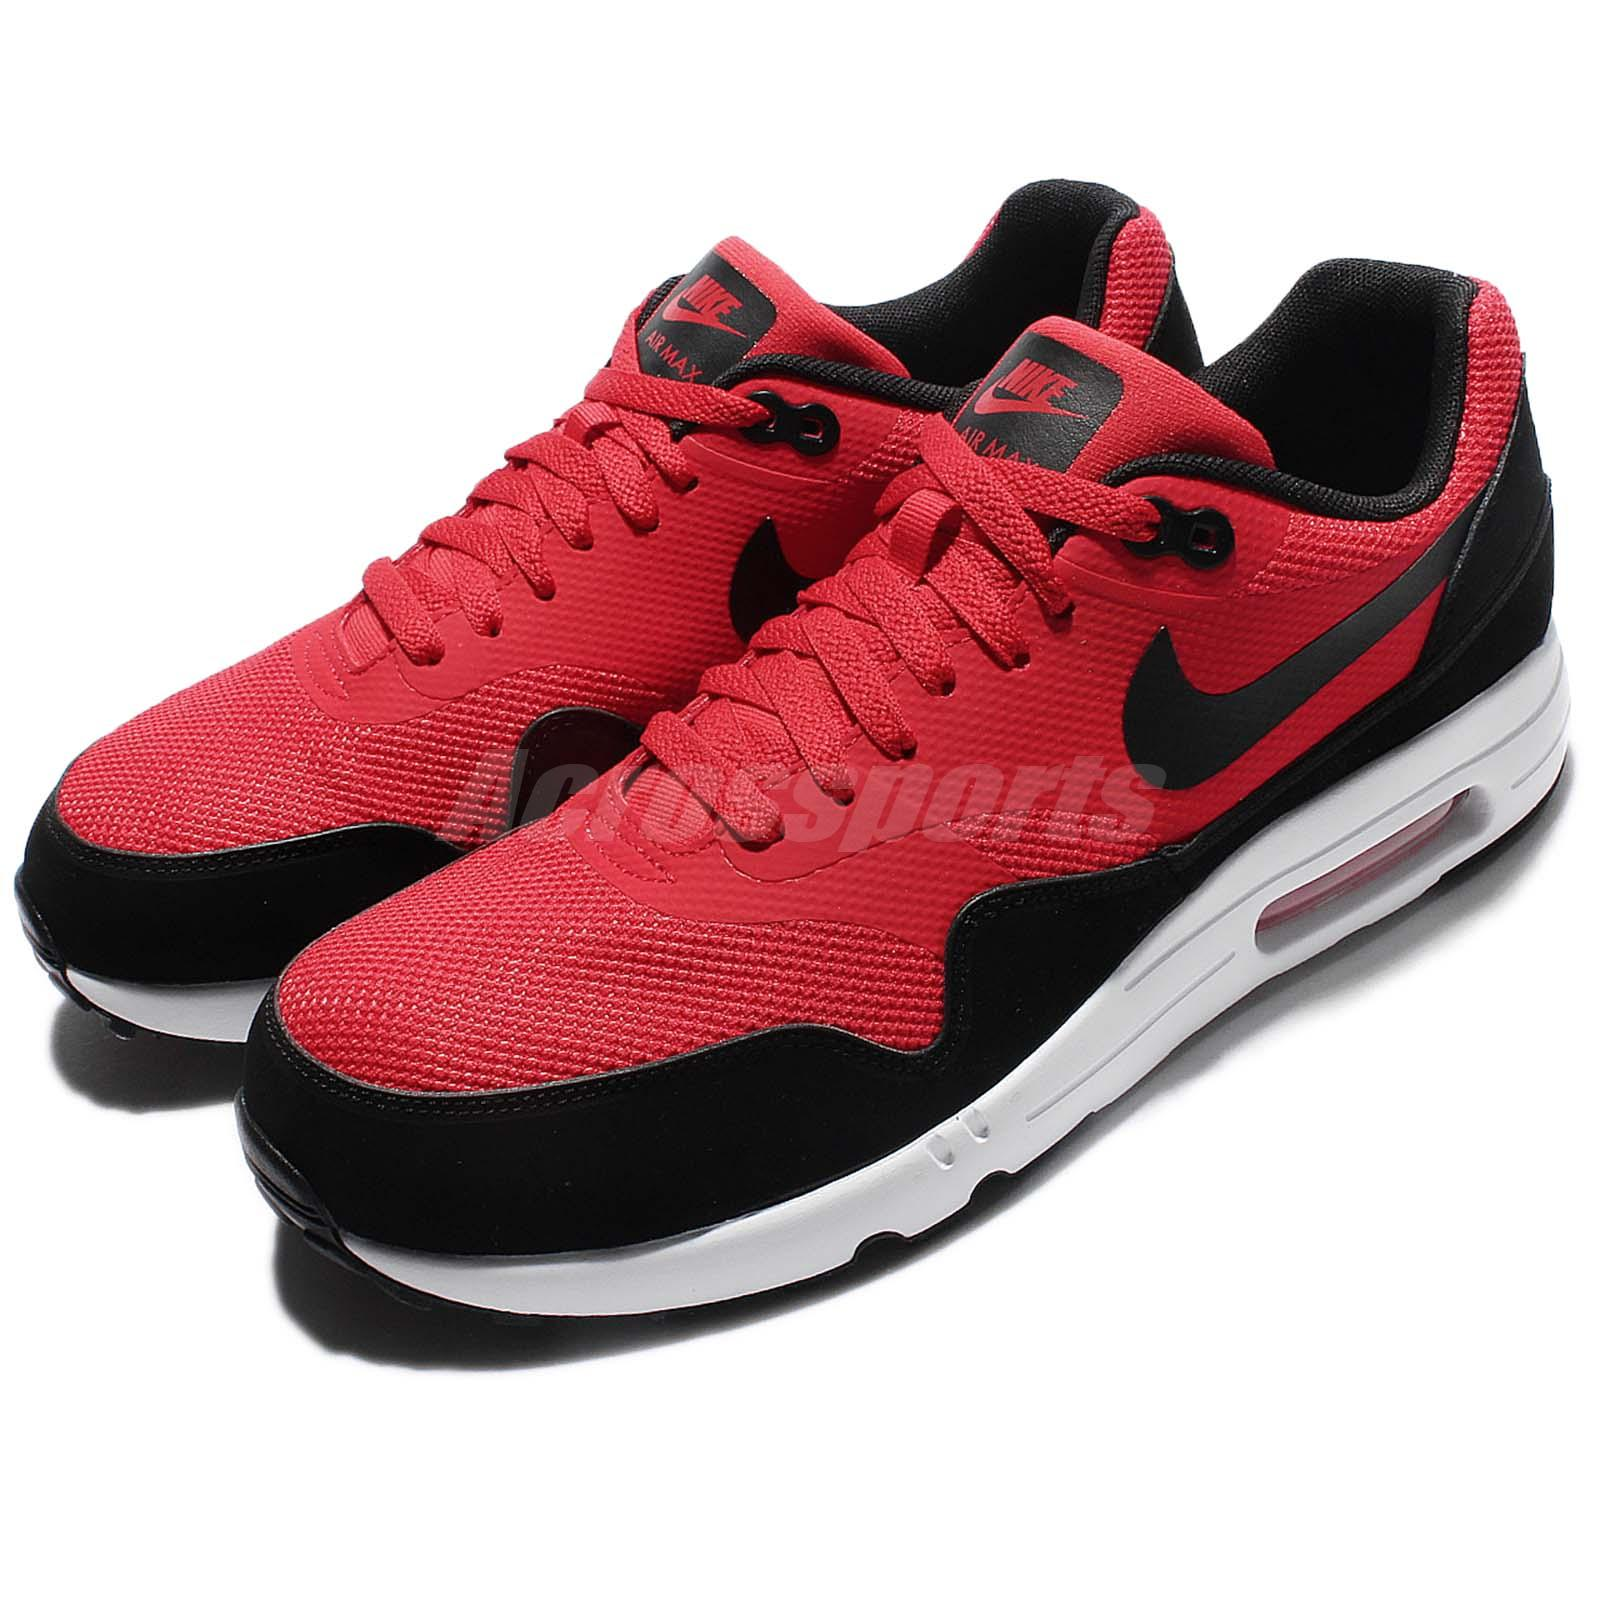 hot sale online e0ef7 509ad Details about Nike Air Max 1 Ultra 2.0 Essential Red Black Men Running Shoe  Sneaker 875679-600